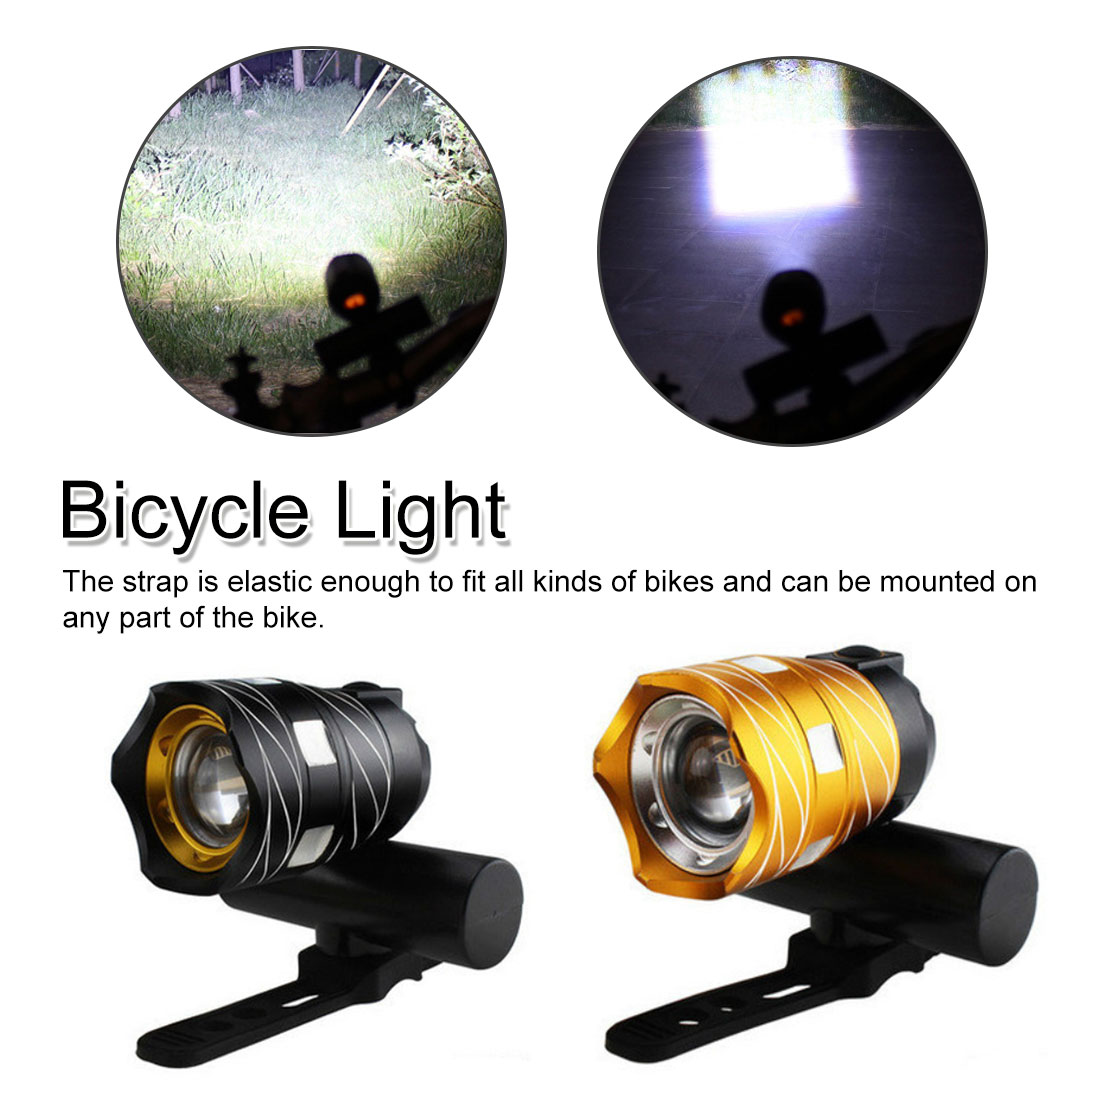 15000LM LED Free Zoom Waterproof <font><b>Bicycle</b></font> <font><b>Light</b></font> <font><b>Bike</b></font> Front <font><b>Lamp</b></font> <font><b>Torch</b></font> <font><b>Headlight</b></font> with USB Rechargeable <font><b>Cycling</b></font> <font><b>light</b></font> image